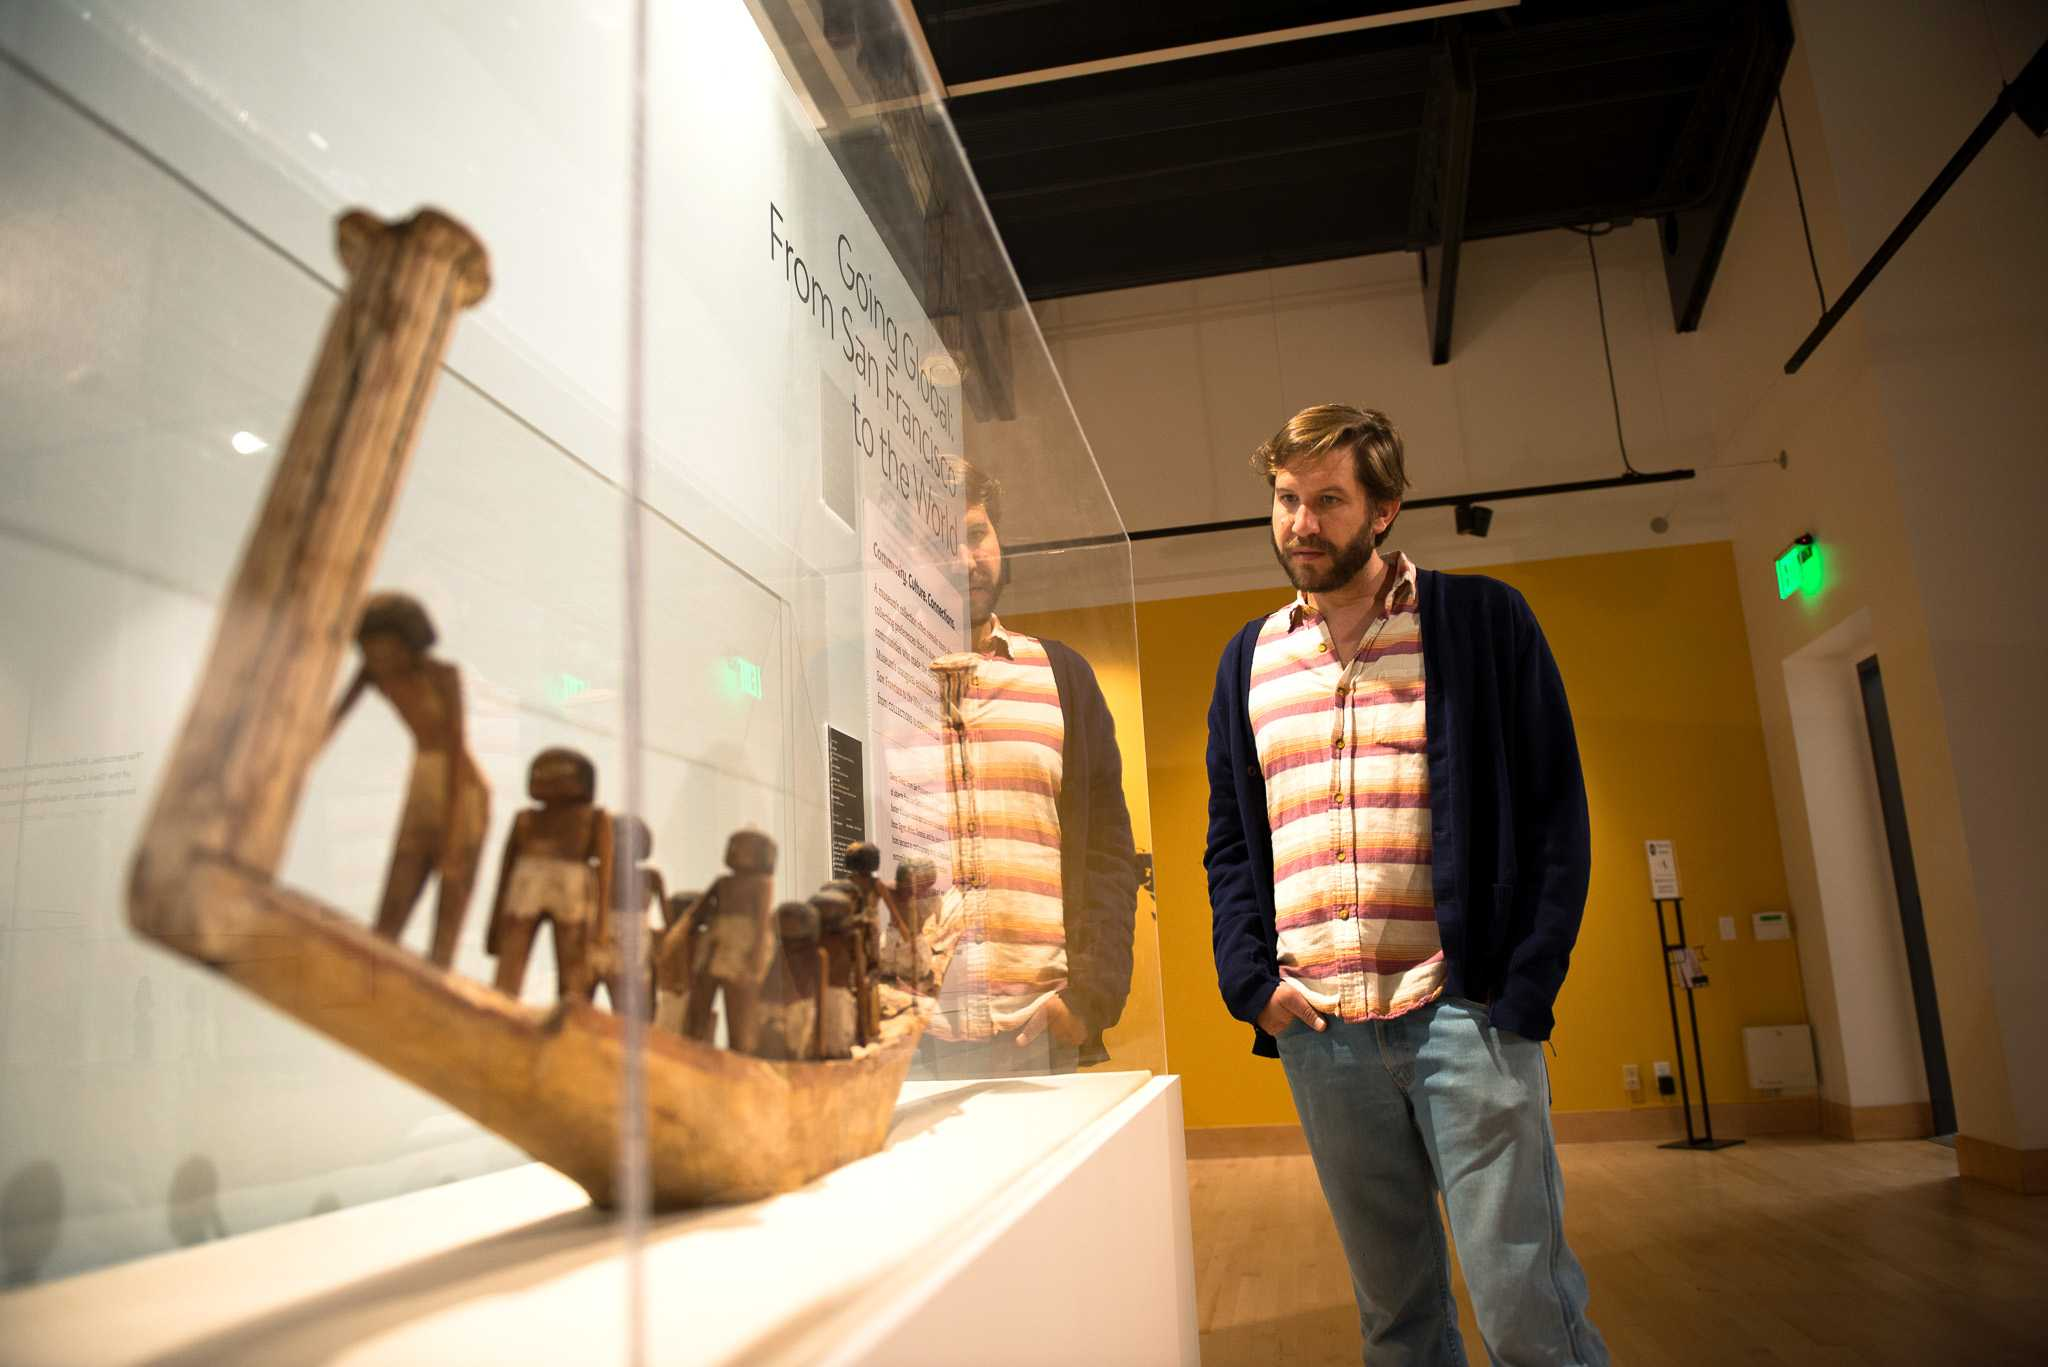 Teddy Albiniak, director of forensics at San Francisco State University is looking at one of the exhibits featured at the Going Global art exhibit that is located in the Global Museum inside the fine arts building on Thursday, Apr. 26, 2018. (David Rodriguez/Golden Gate Xpress)